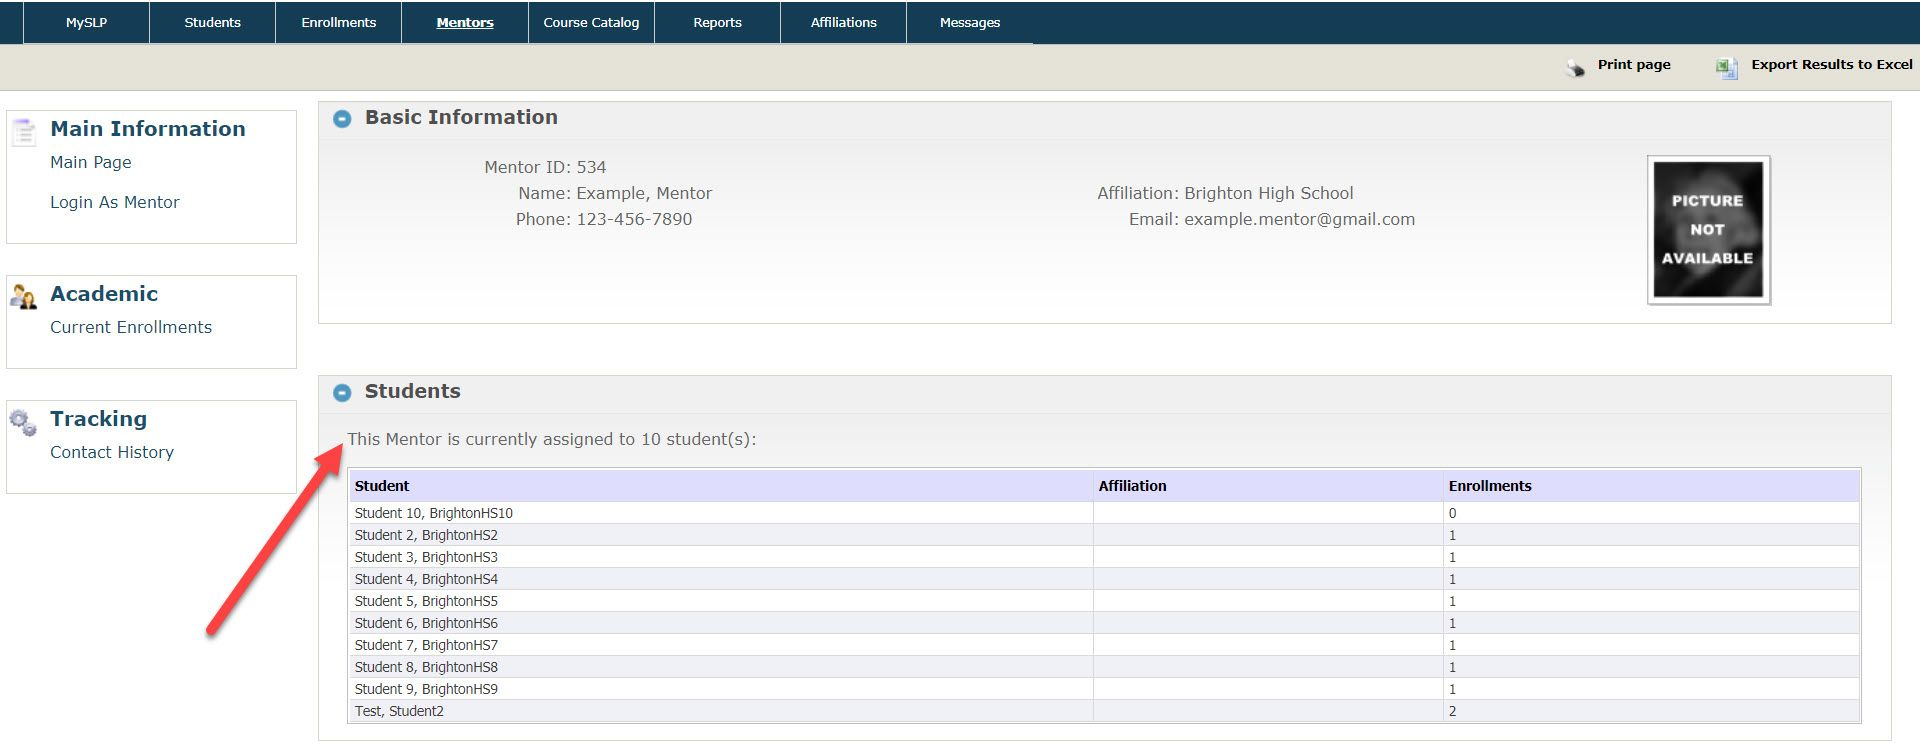 The Main Page shows the Mentor contact data in the Basic Information section. This includes ID, Name, Phone, Affiliation, and Email address. The second section displays the Students this mentor is assigned in a table. The table includes student name, affiliation, and number of enrollments.